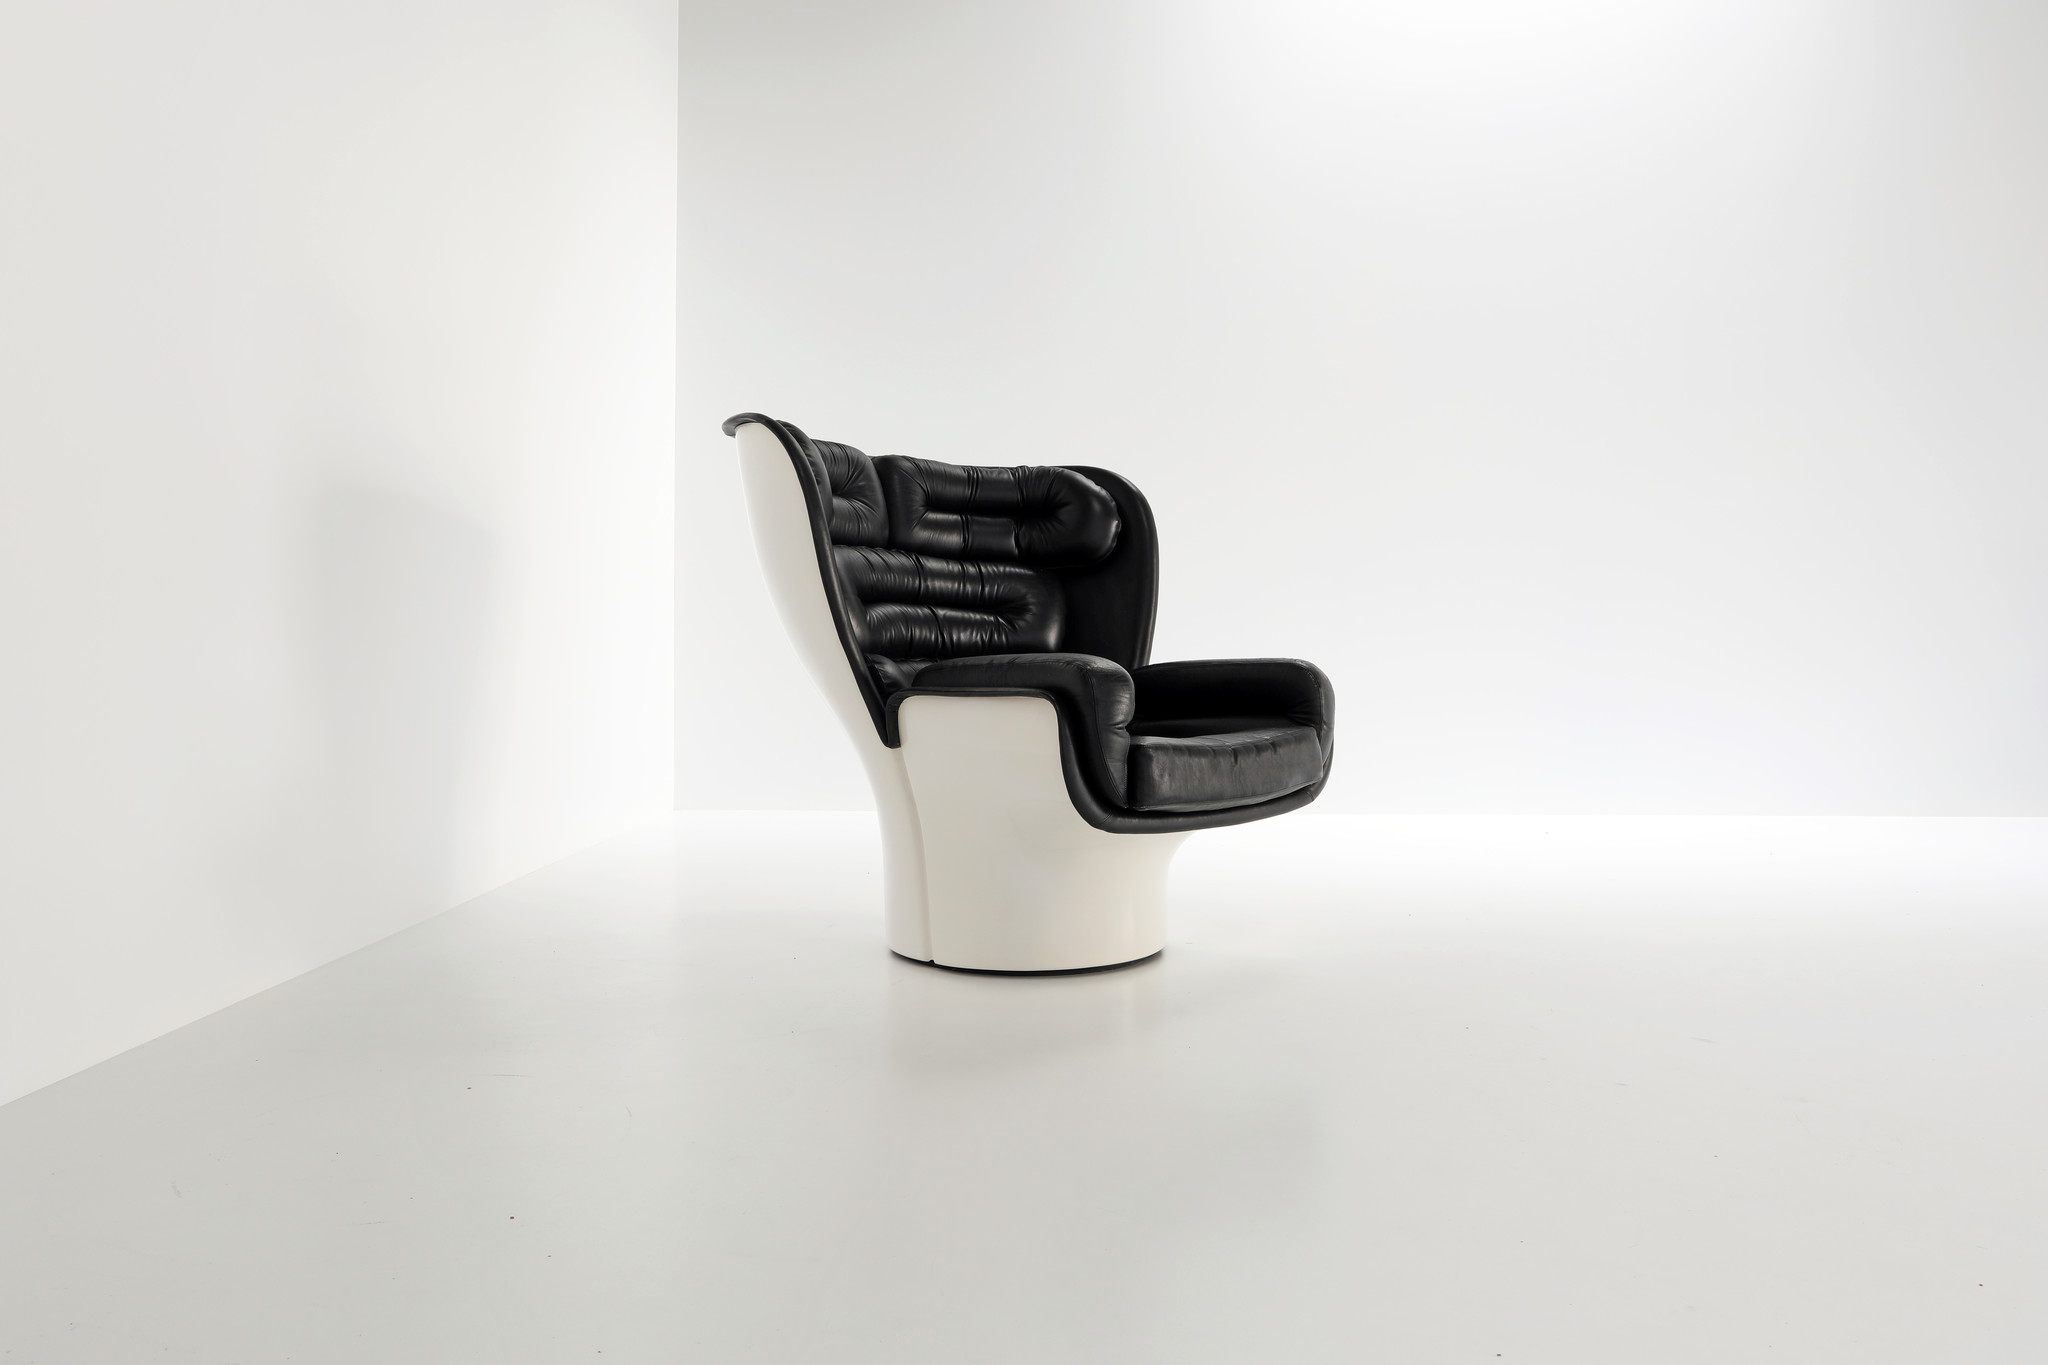 Elda Chair by Joe Colombo for 1960's comfort